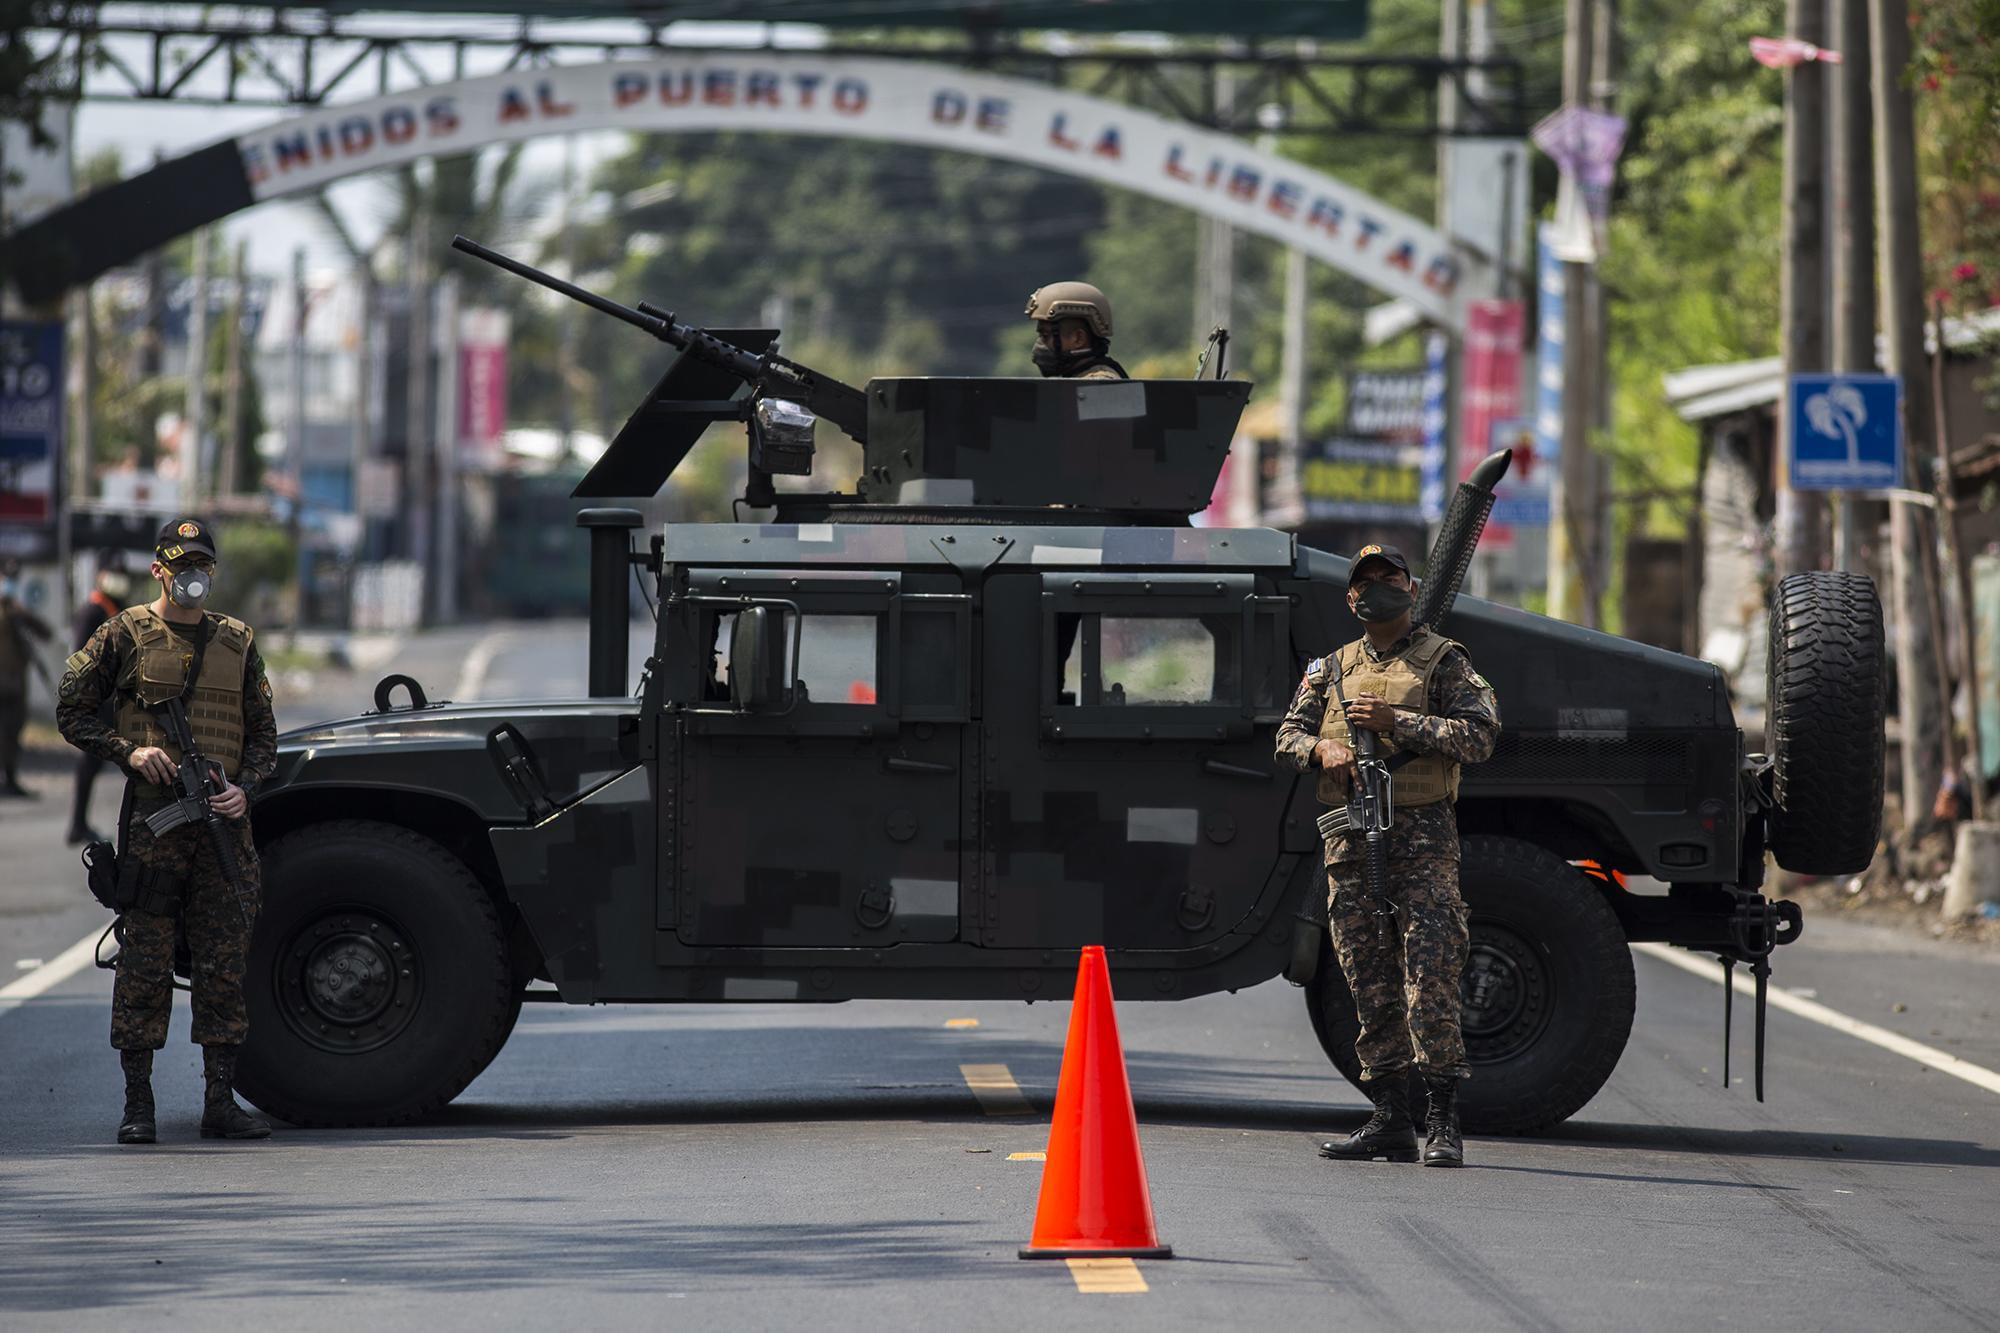 In the evening on Friday, April 17, the armed forces imposed a military blockade to curb traffic through Puerto de La Libertad and enforce the domestic quarantine, according to the office of the president. At the first checkpoint, a humvee and more than ten soldiers cut off access to the town.